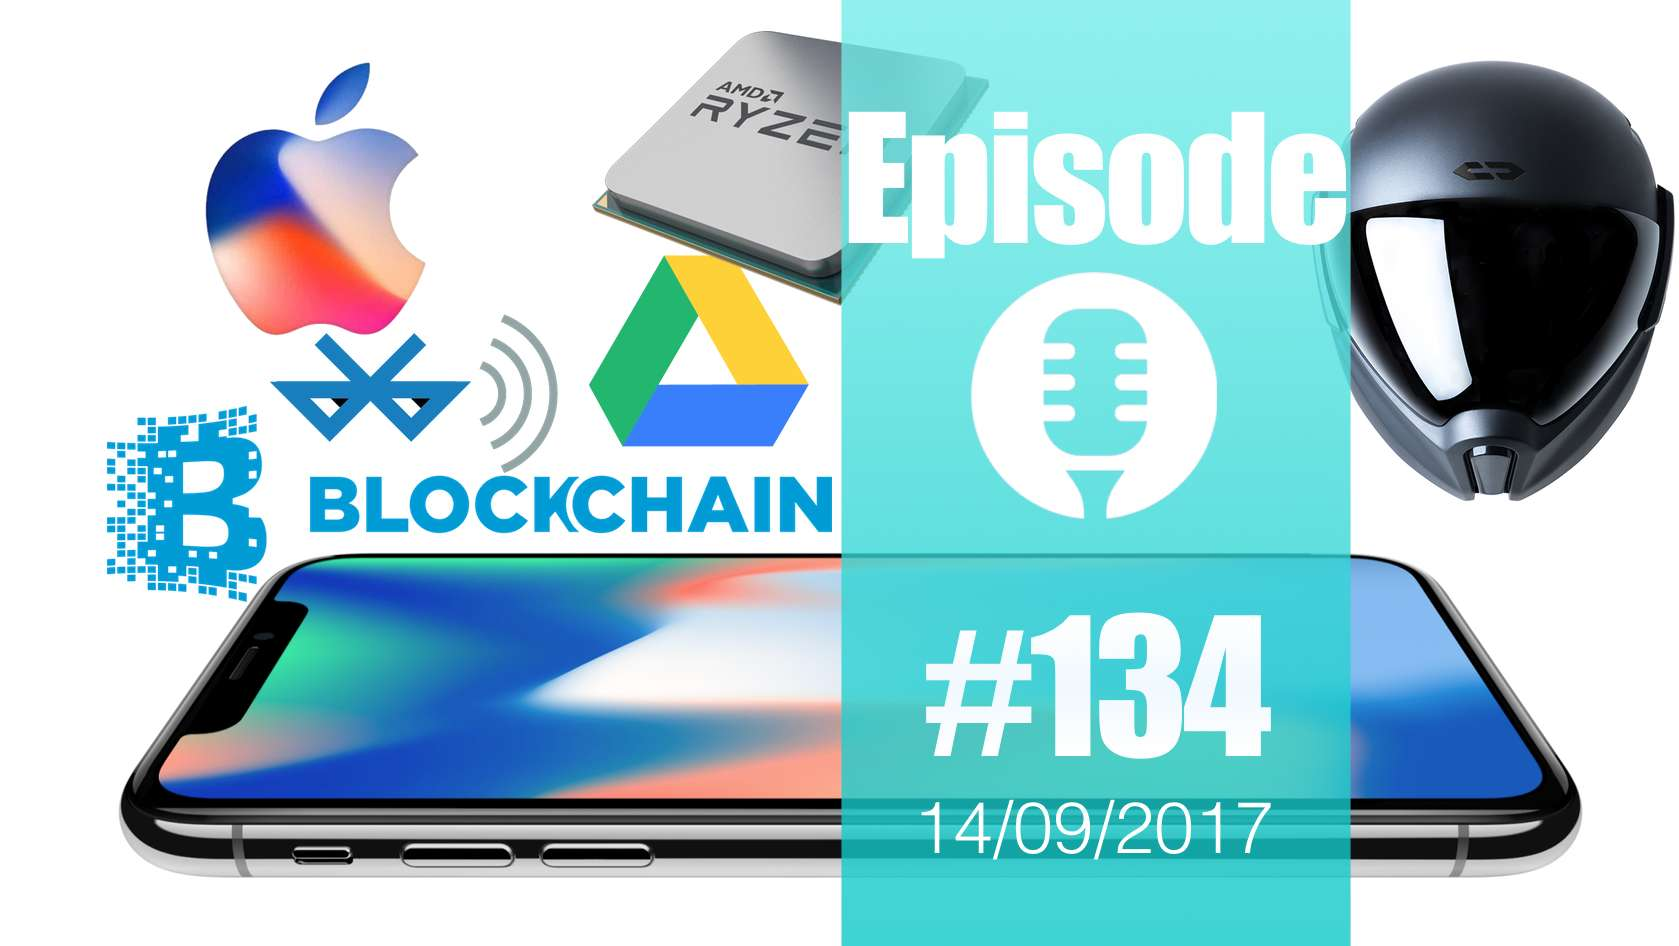 #134: iPhone 8, iPhone X, FaceID, AppleTV, iWatch3, Blockchain, AMD Ryzen, IA, CrossHelmet, Tesla, VW,…